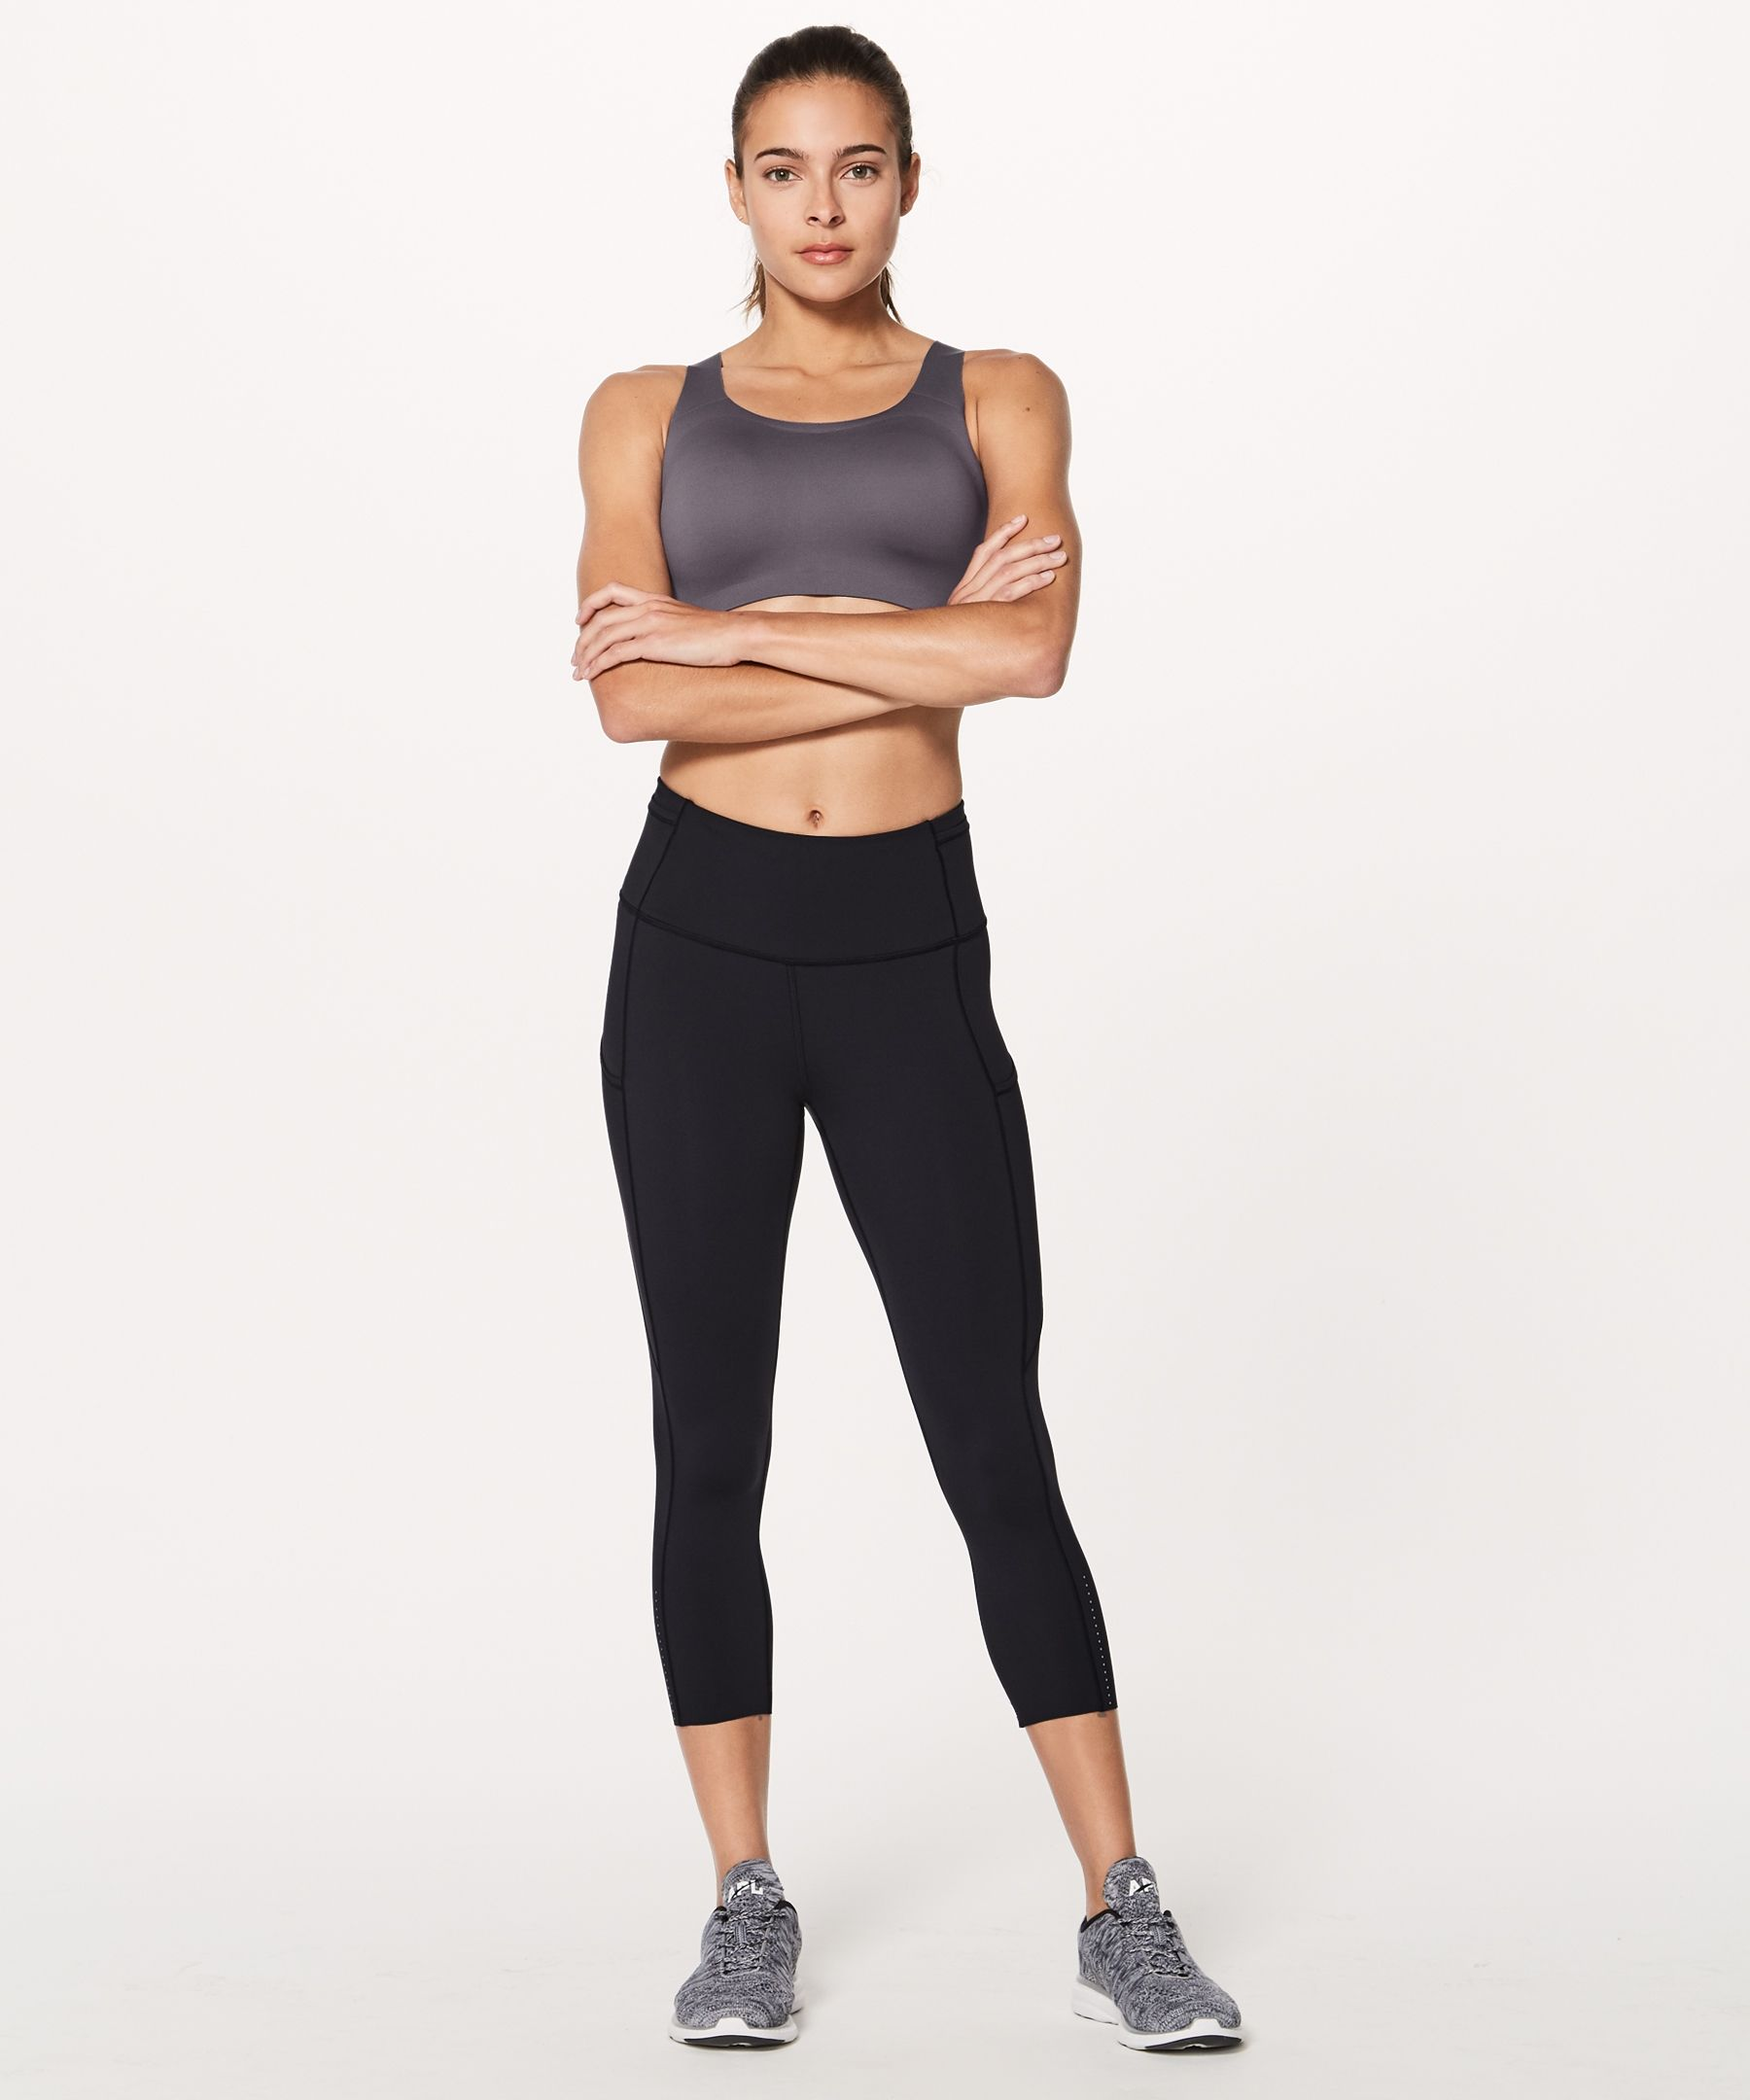 981419deb3030 Enlite bra lululemon -Running never felt so good—we designed this revolutionary  bra to give you comfort